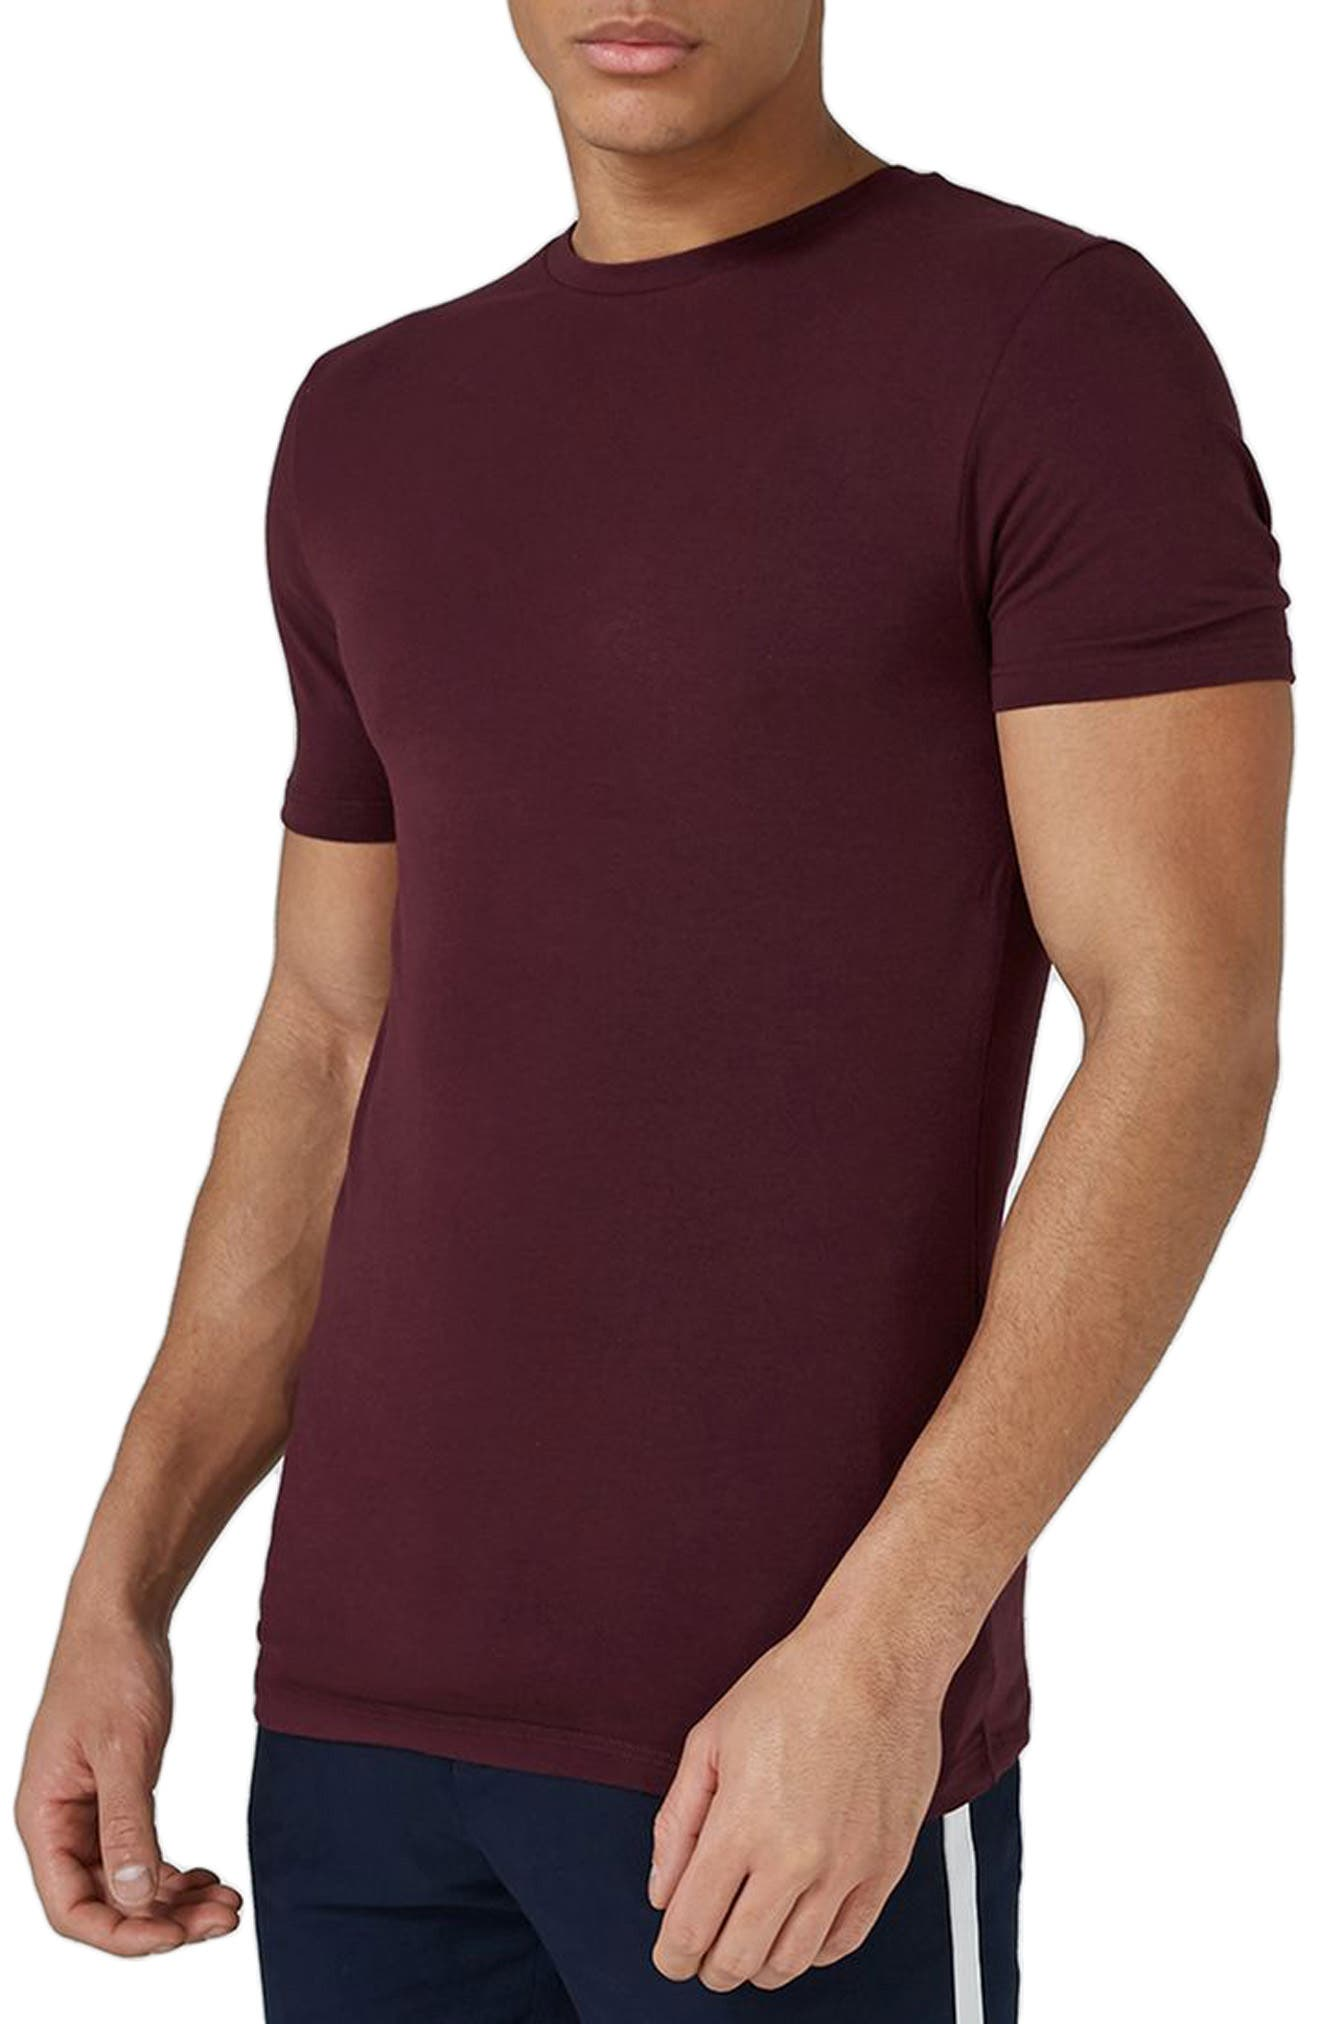 Ultra Muscle Fit T-Shirt,                         Main,                         color, 930